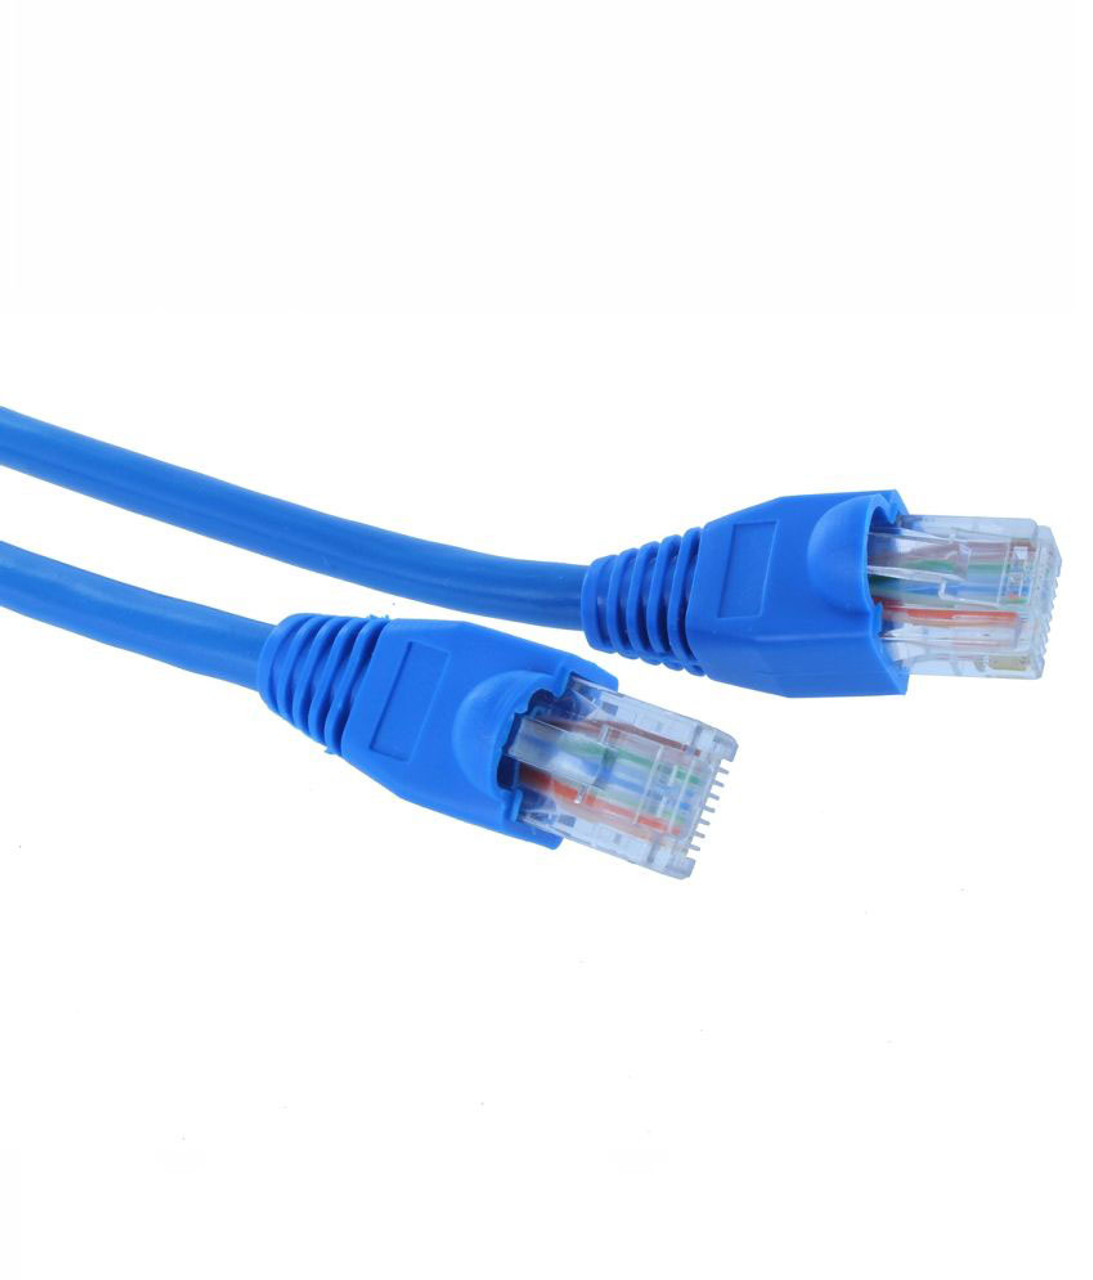 Product image for CAT5e PATCH CORD 15M BLUE Network Cable 31998 | CX Computer Superstore